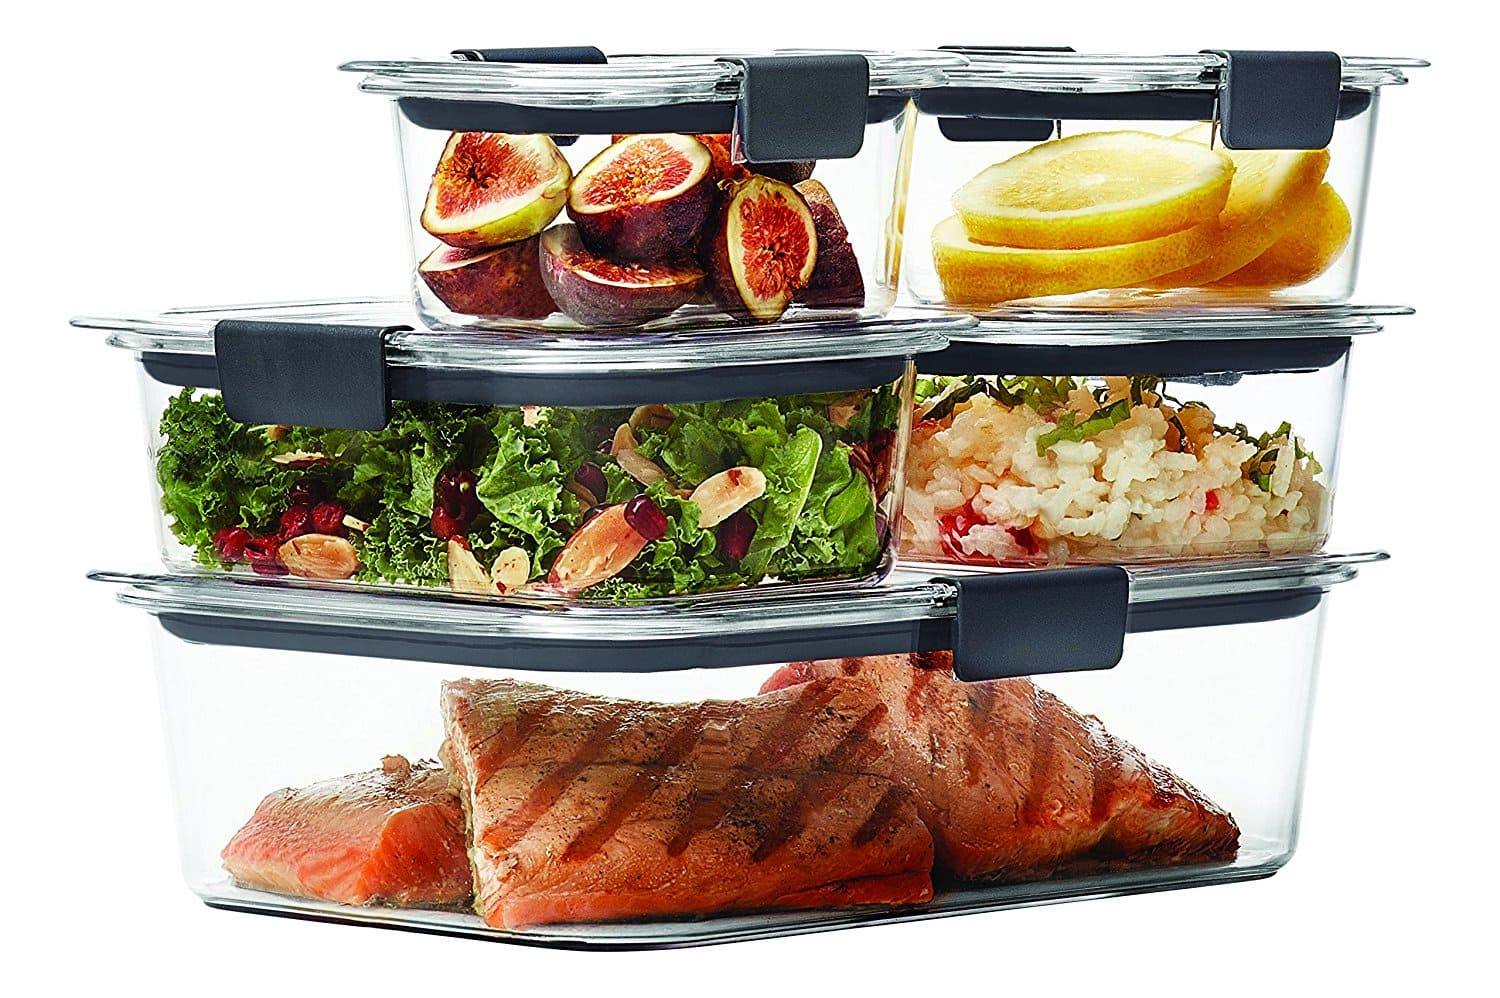 10-Piece Set Rubbermaid Brilliance Food Storage Container 100% Leak-Proof, Plastic, Clear - $11.39 at Amazon